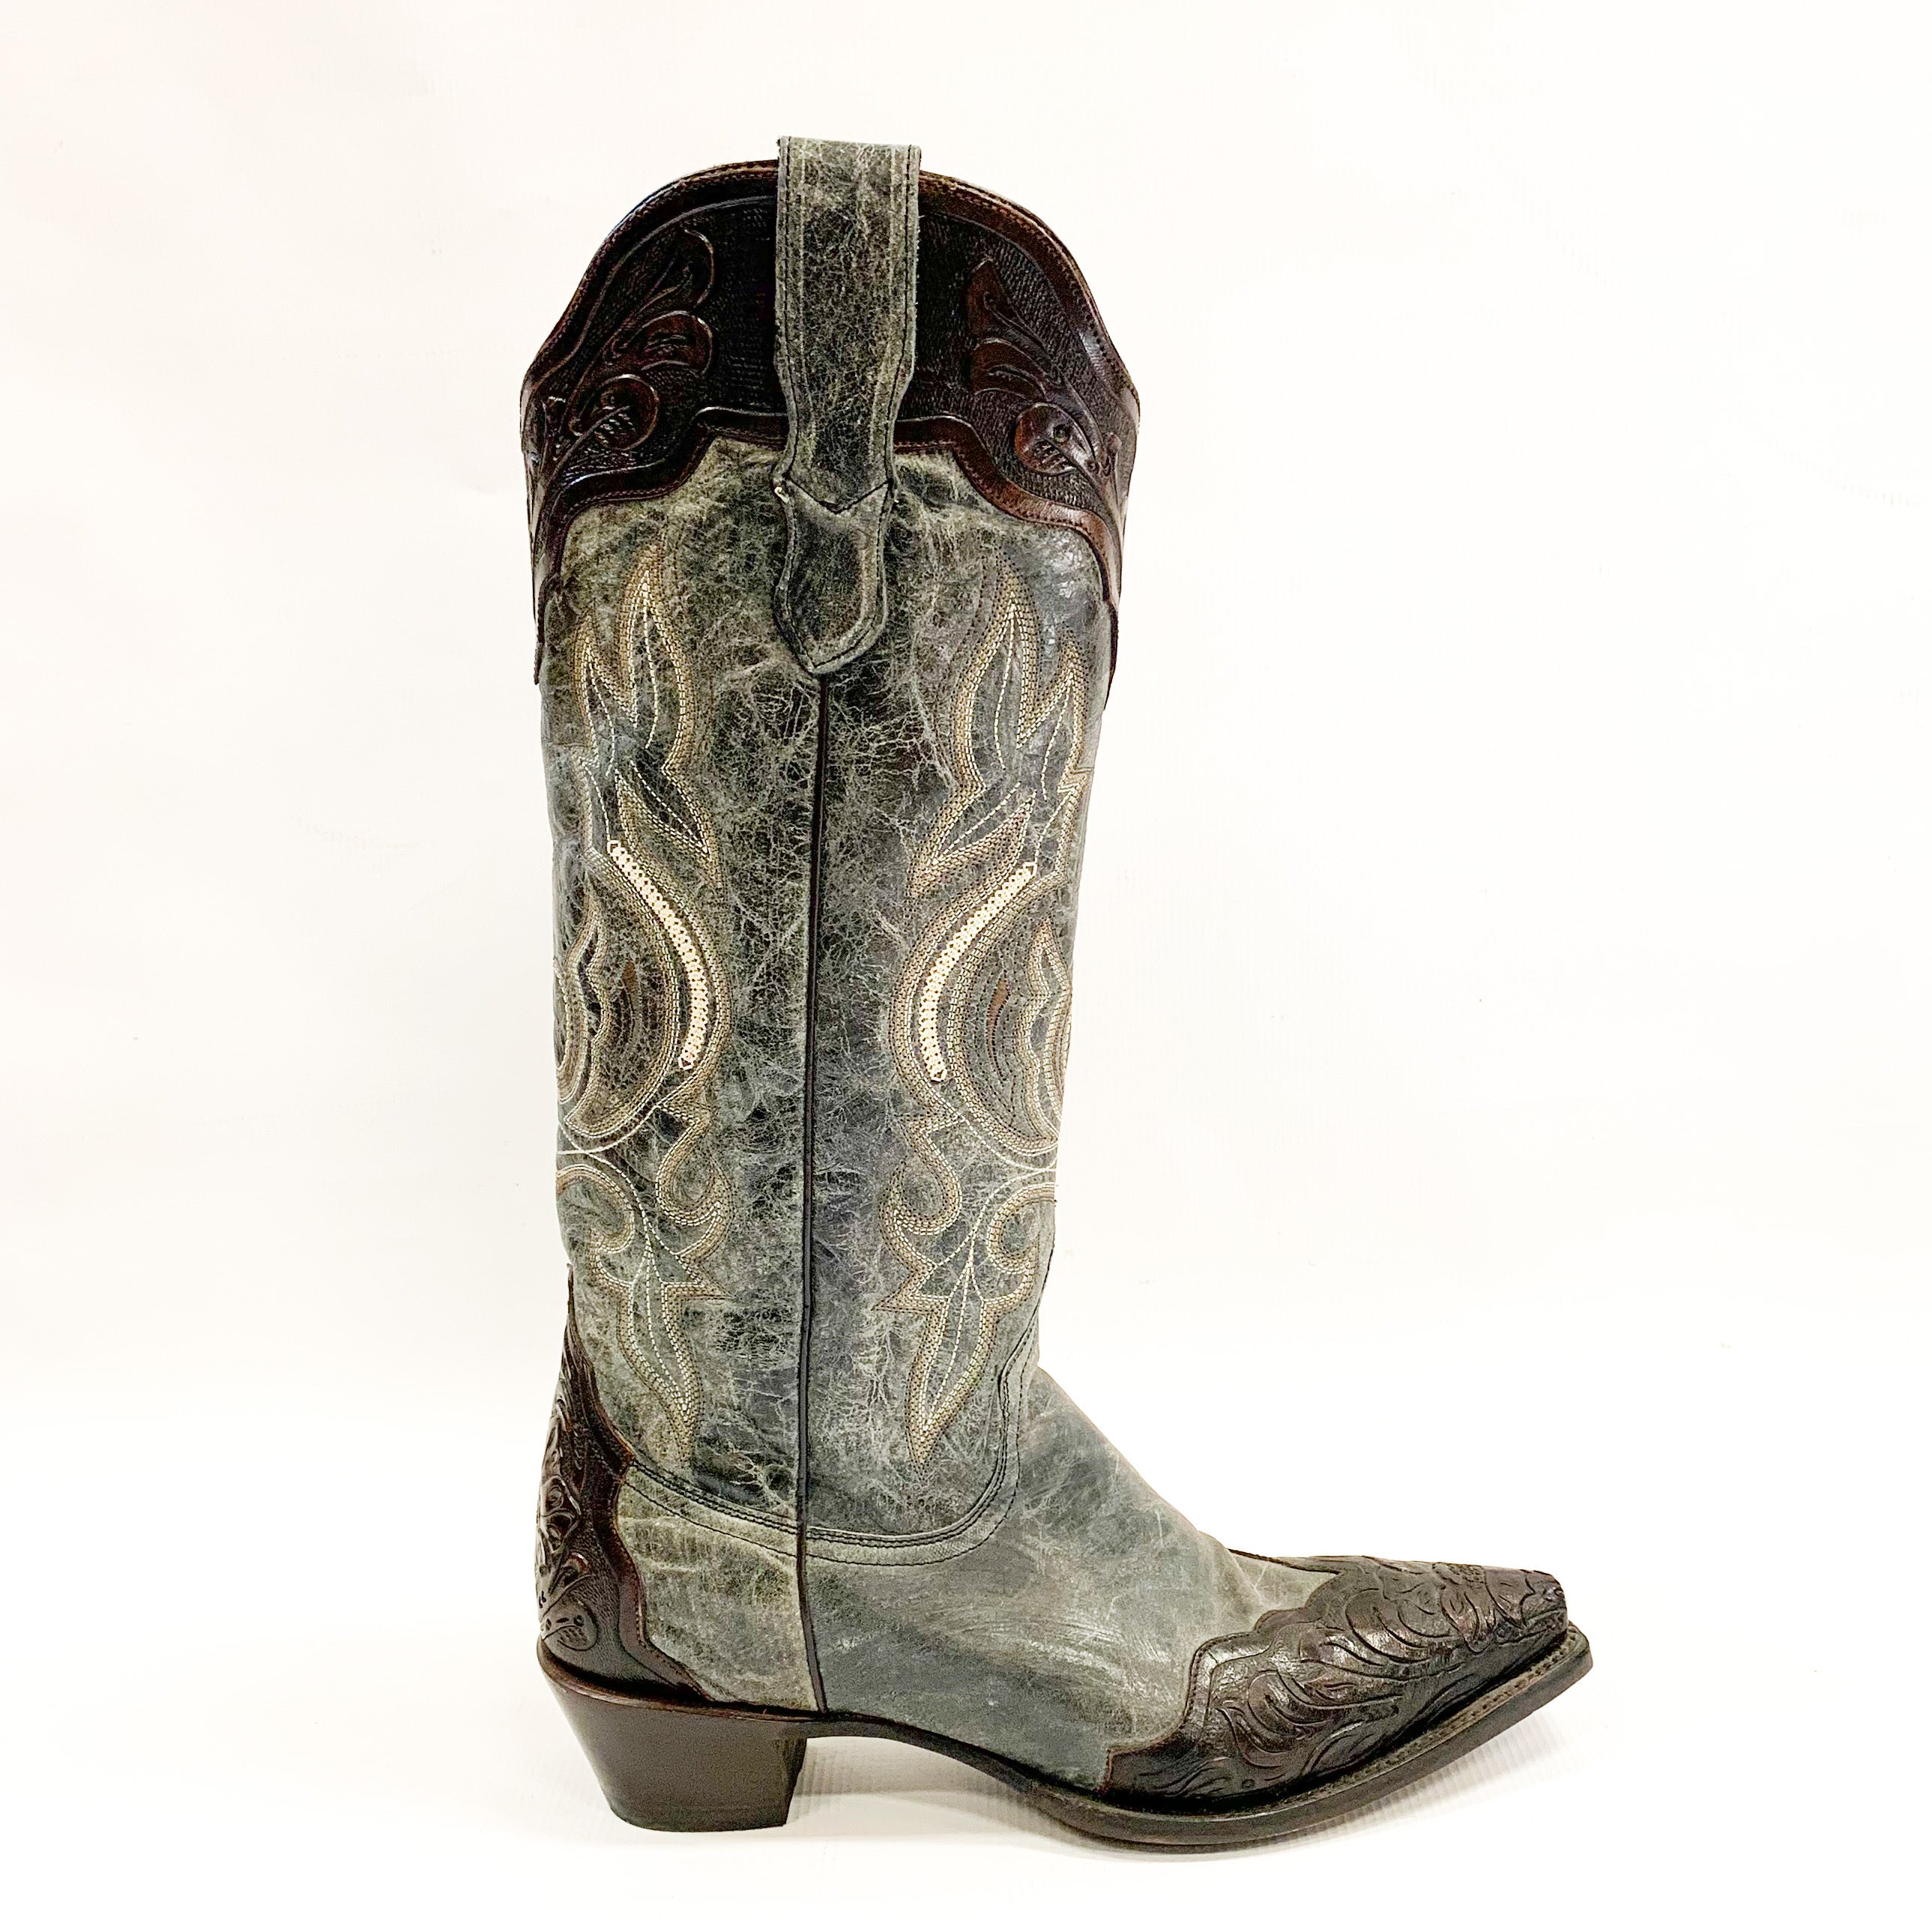 Stetson Crackled Black Tooled Cowboy Boot